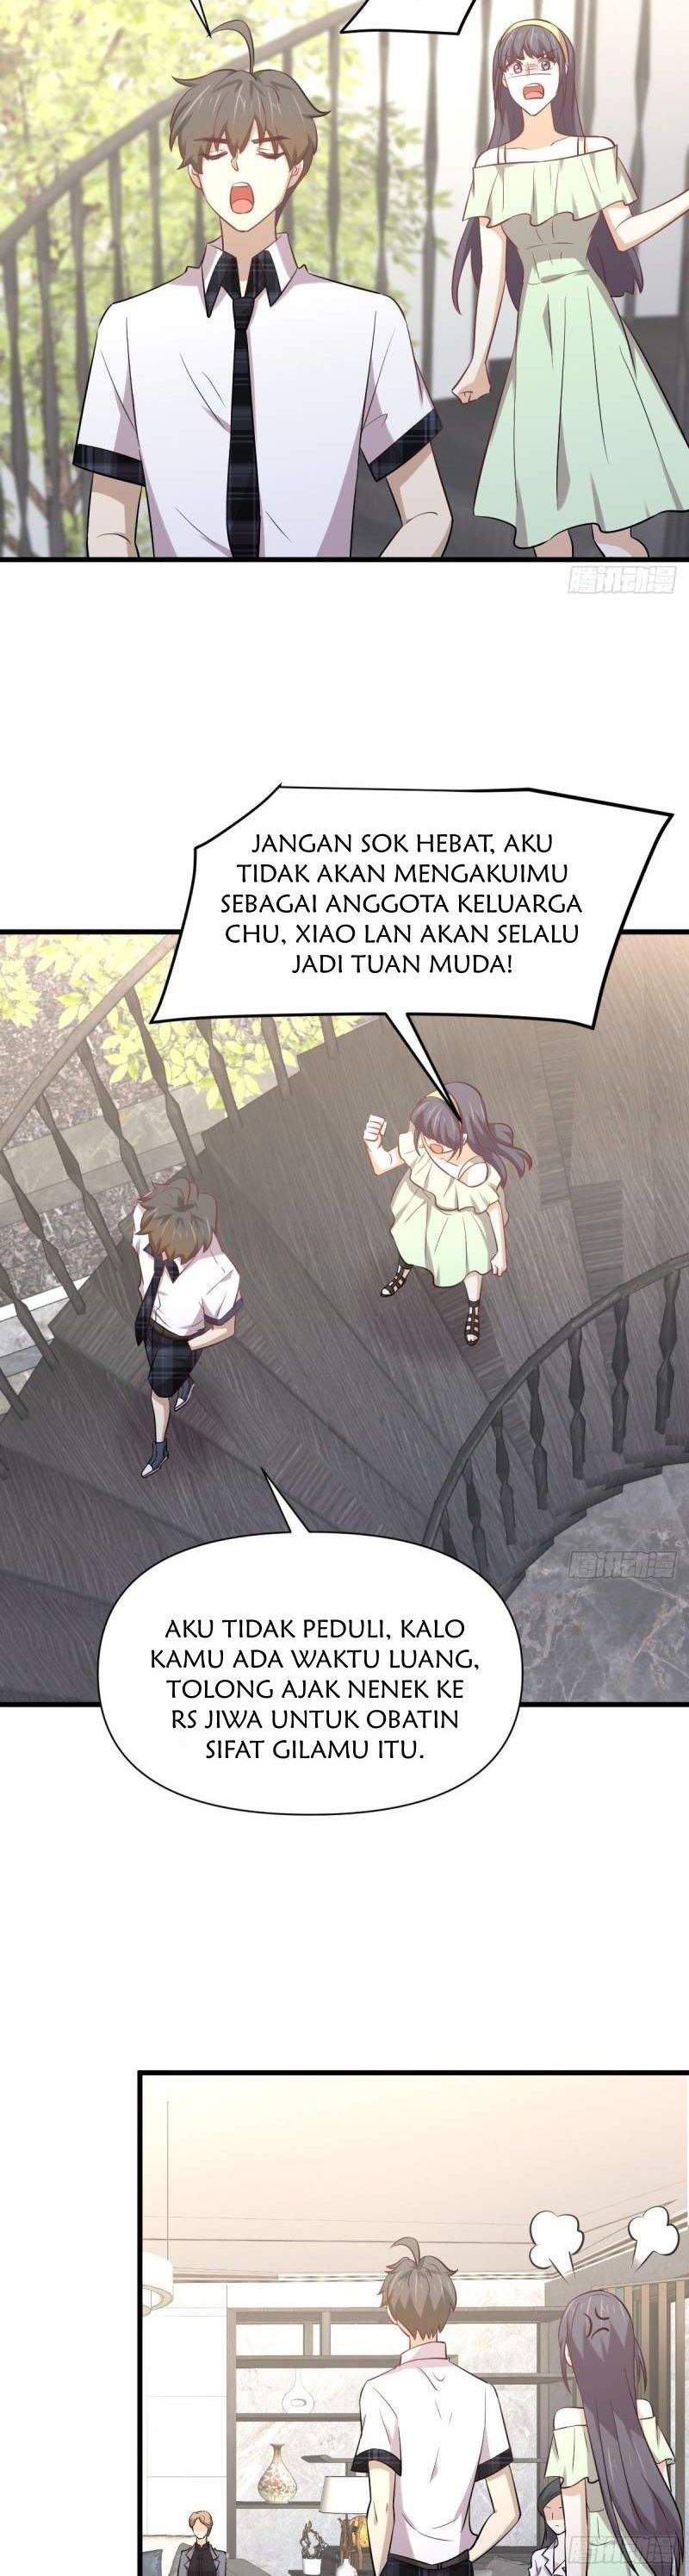 Immortal Swordsman in The Reverse World Chapter 232